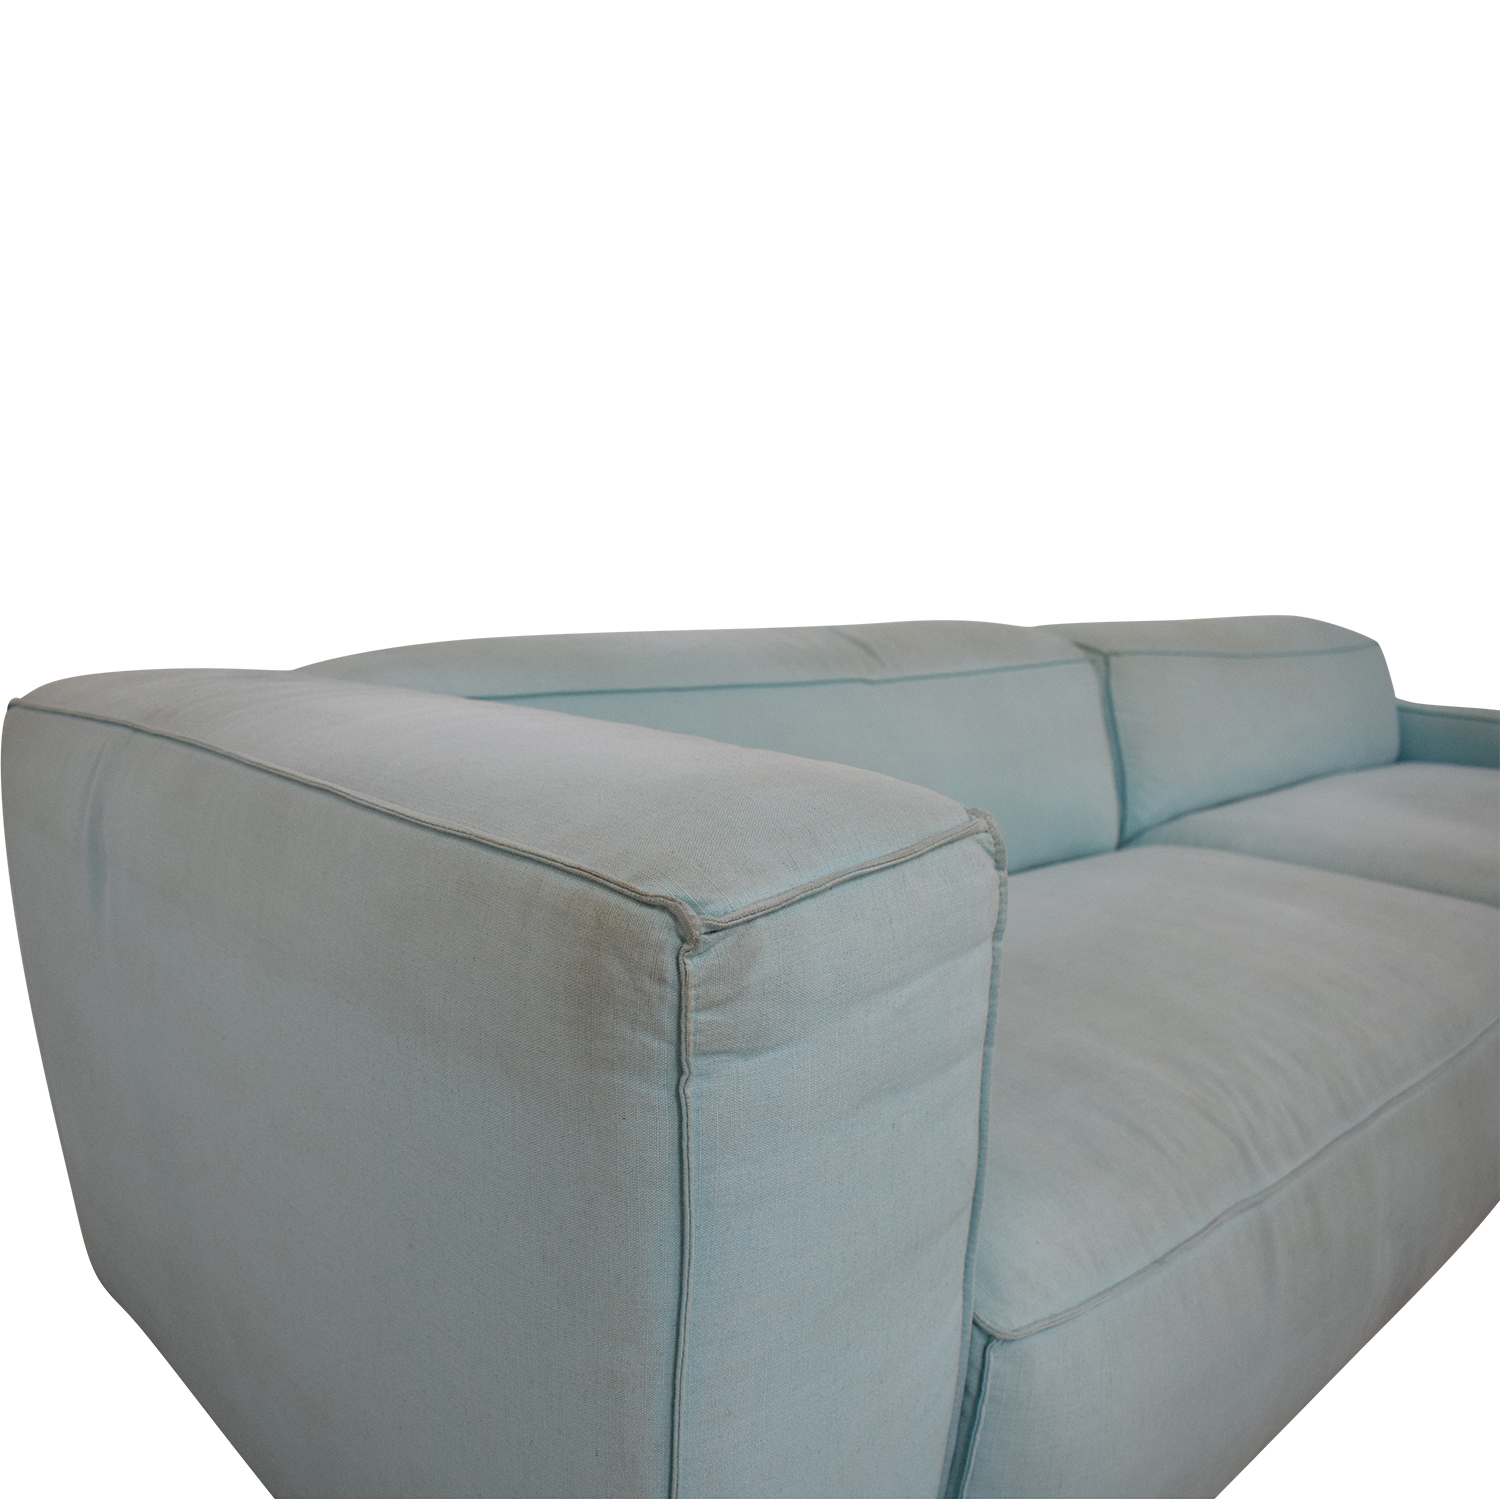 Interior Define Interior Define Two-Piece Sectional Sofa second hand